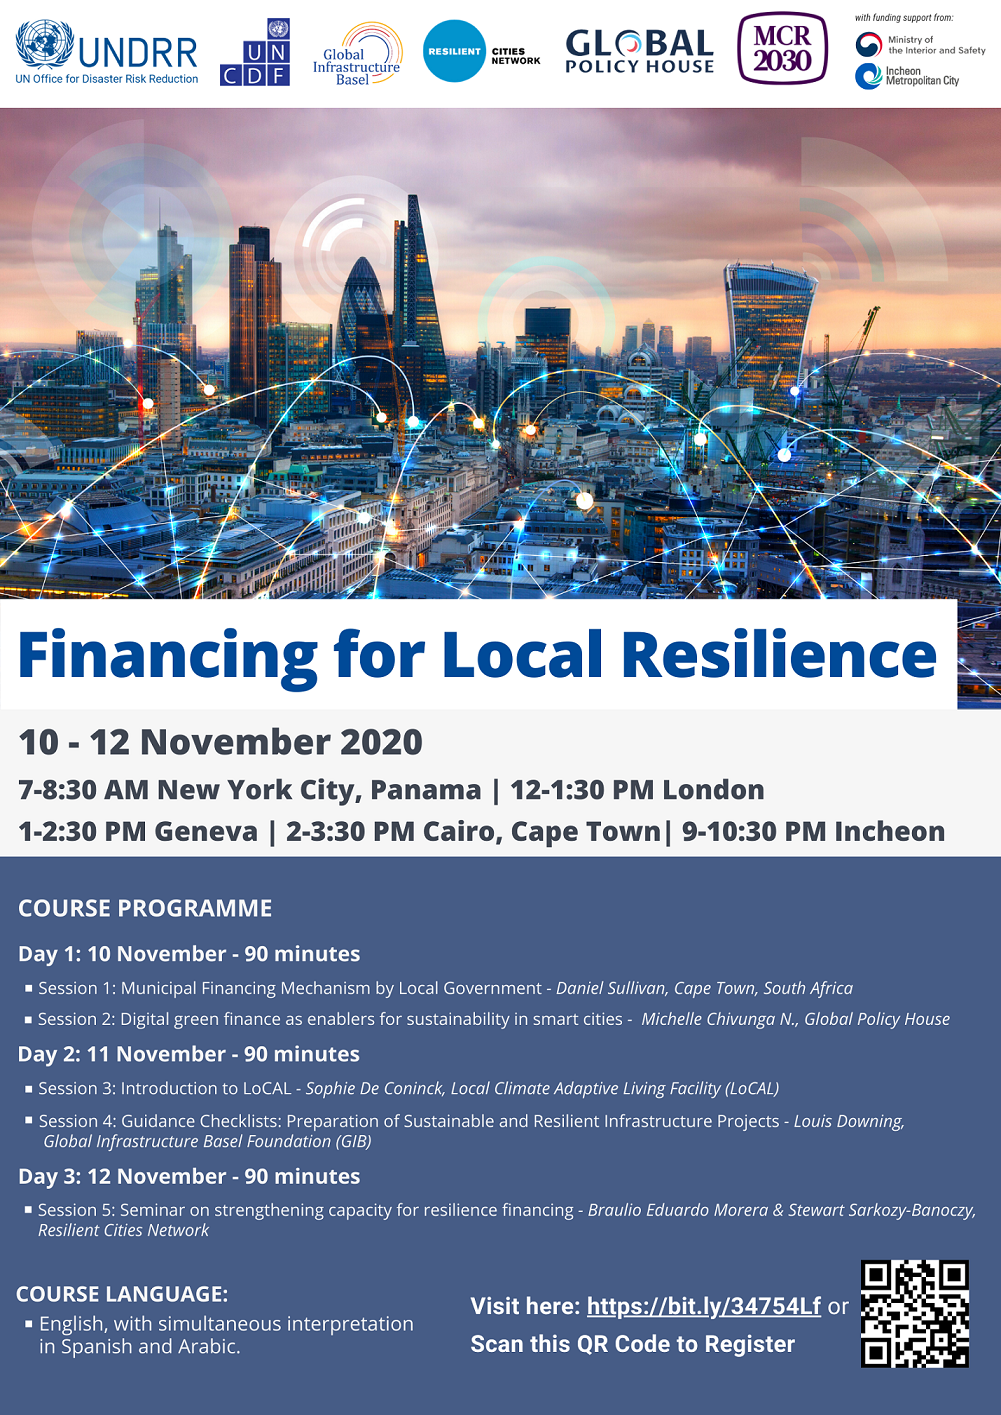 Financing for local resilience flyer